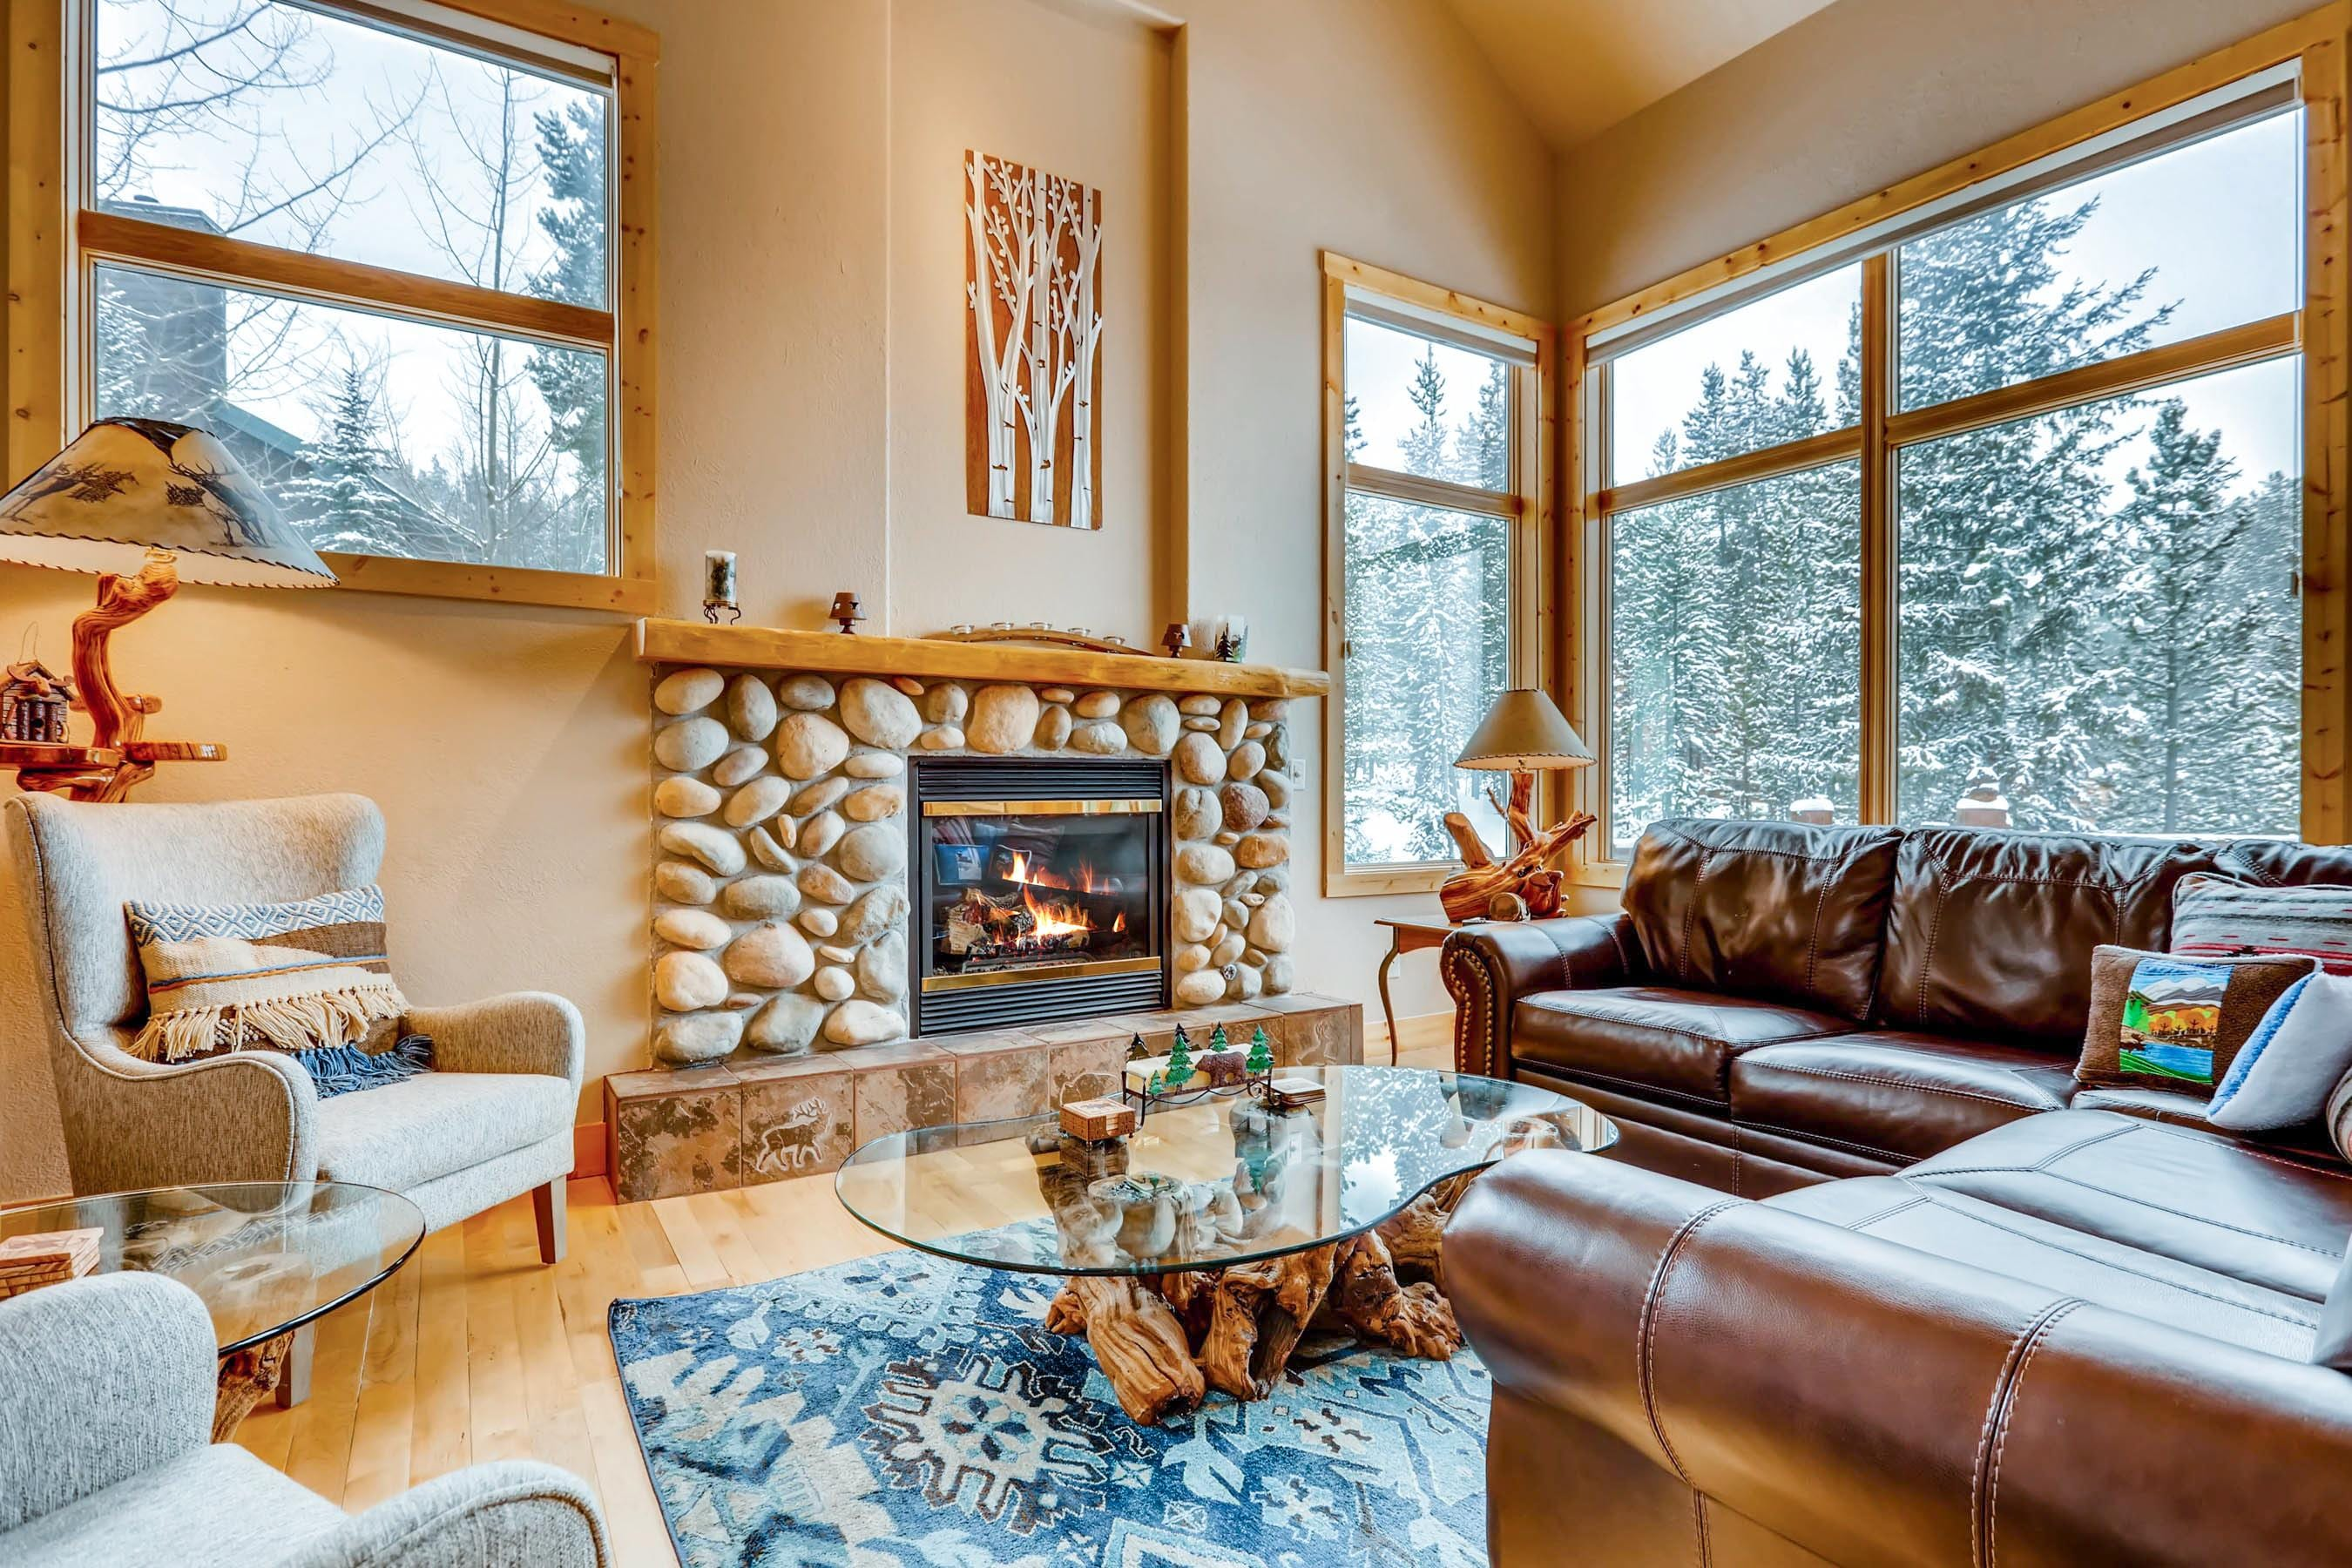 Welcome to Breckenridge! A gas fireplace in the main living area adds a snug feel on snowy winter nights.